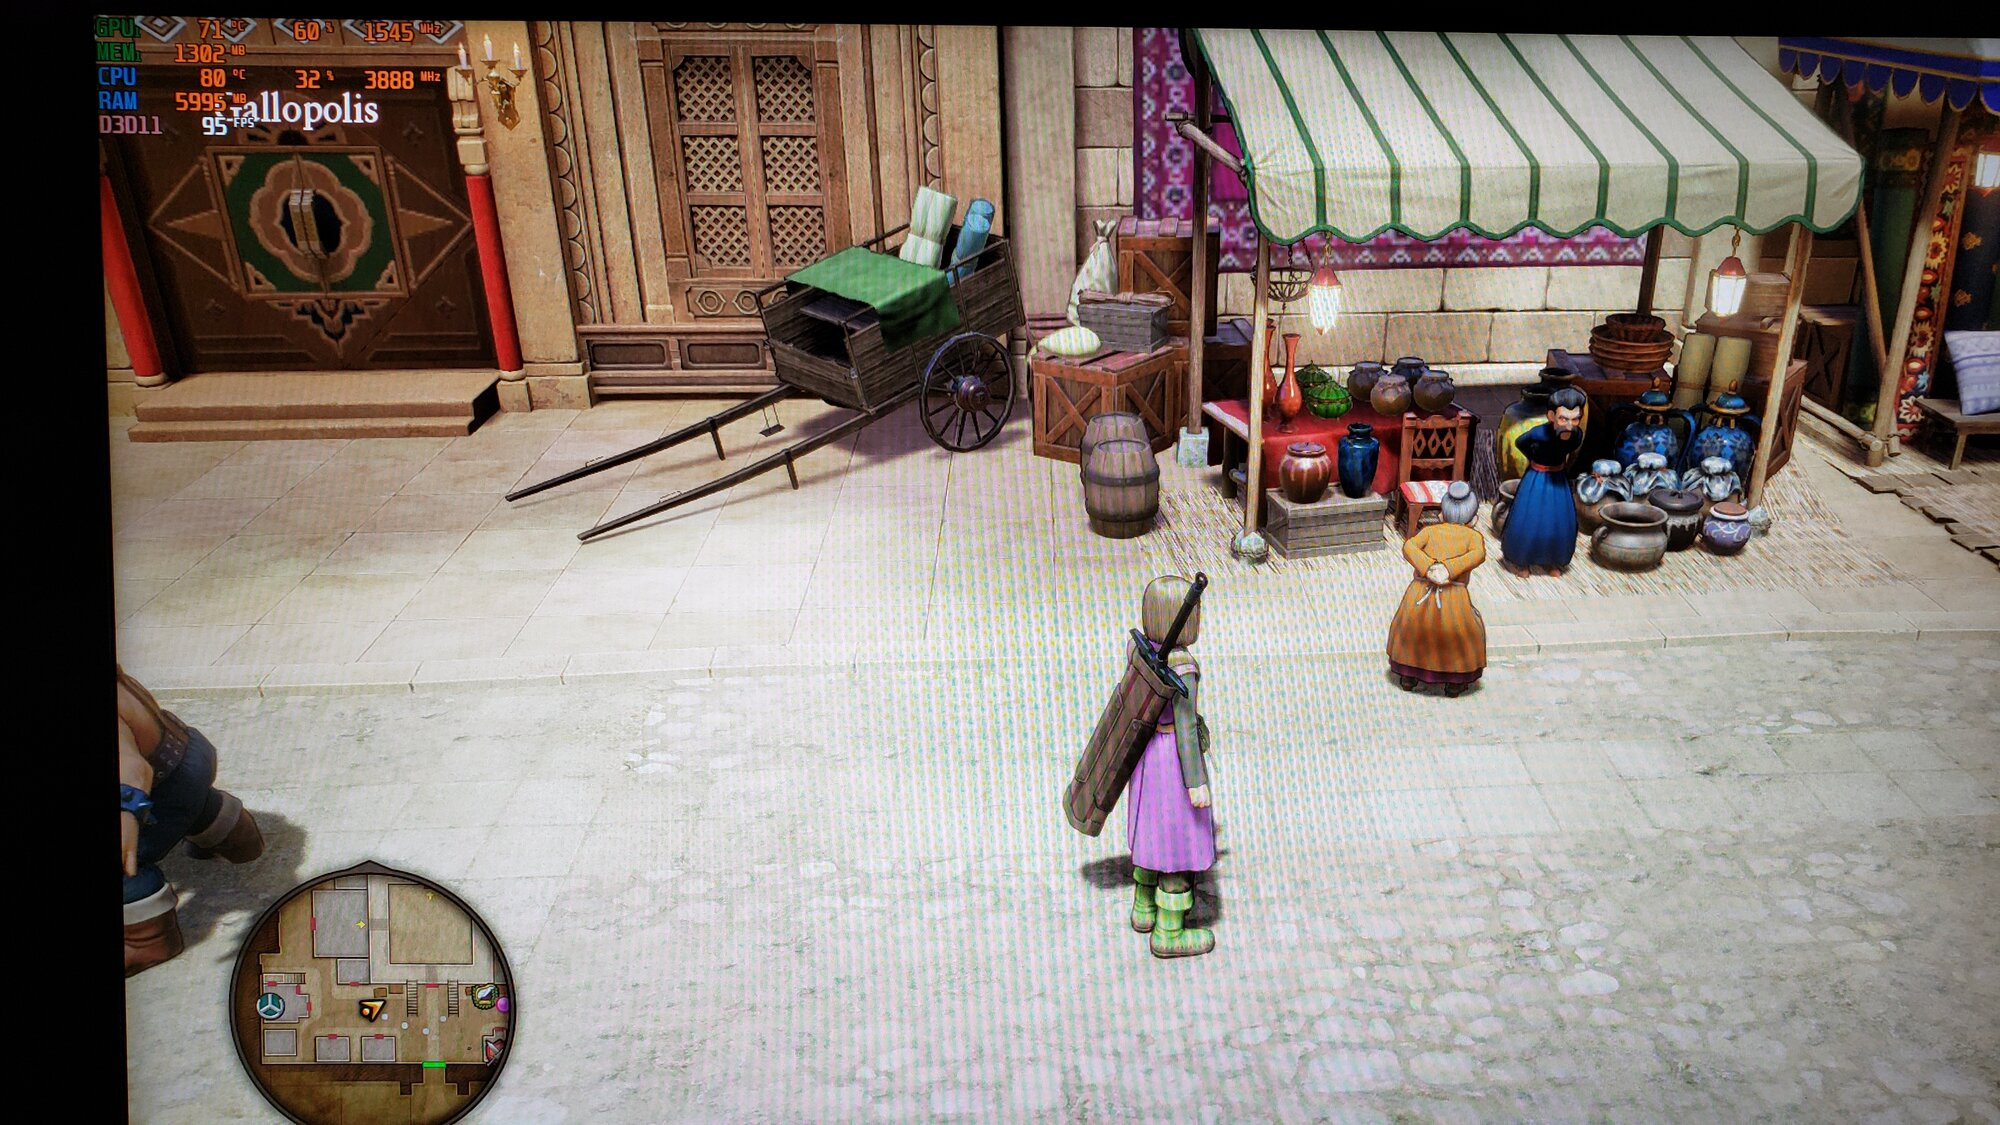 Anyone with Dragonquest XI on PC? Need help | [H]ard|Forum